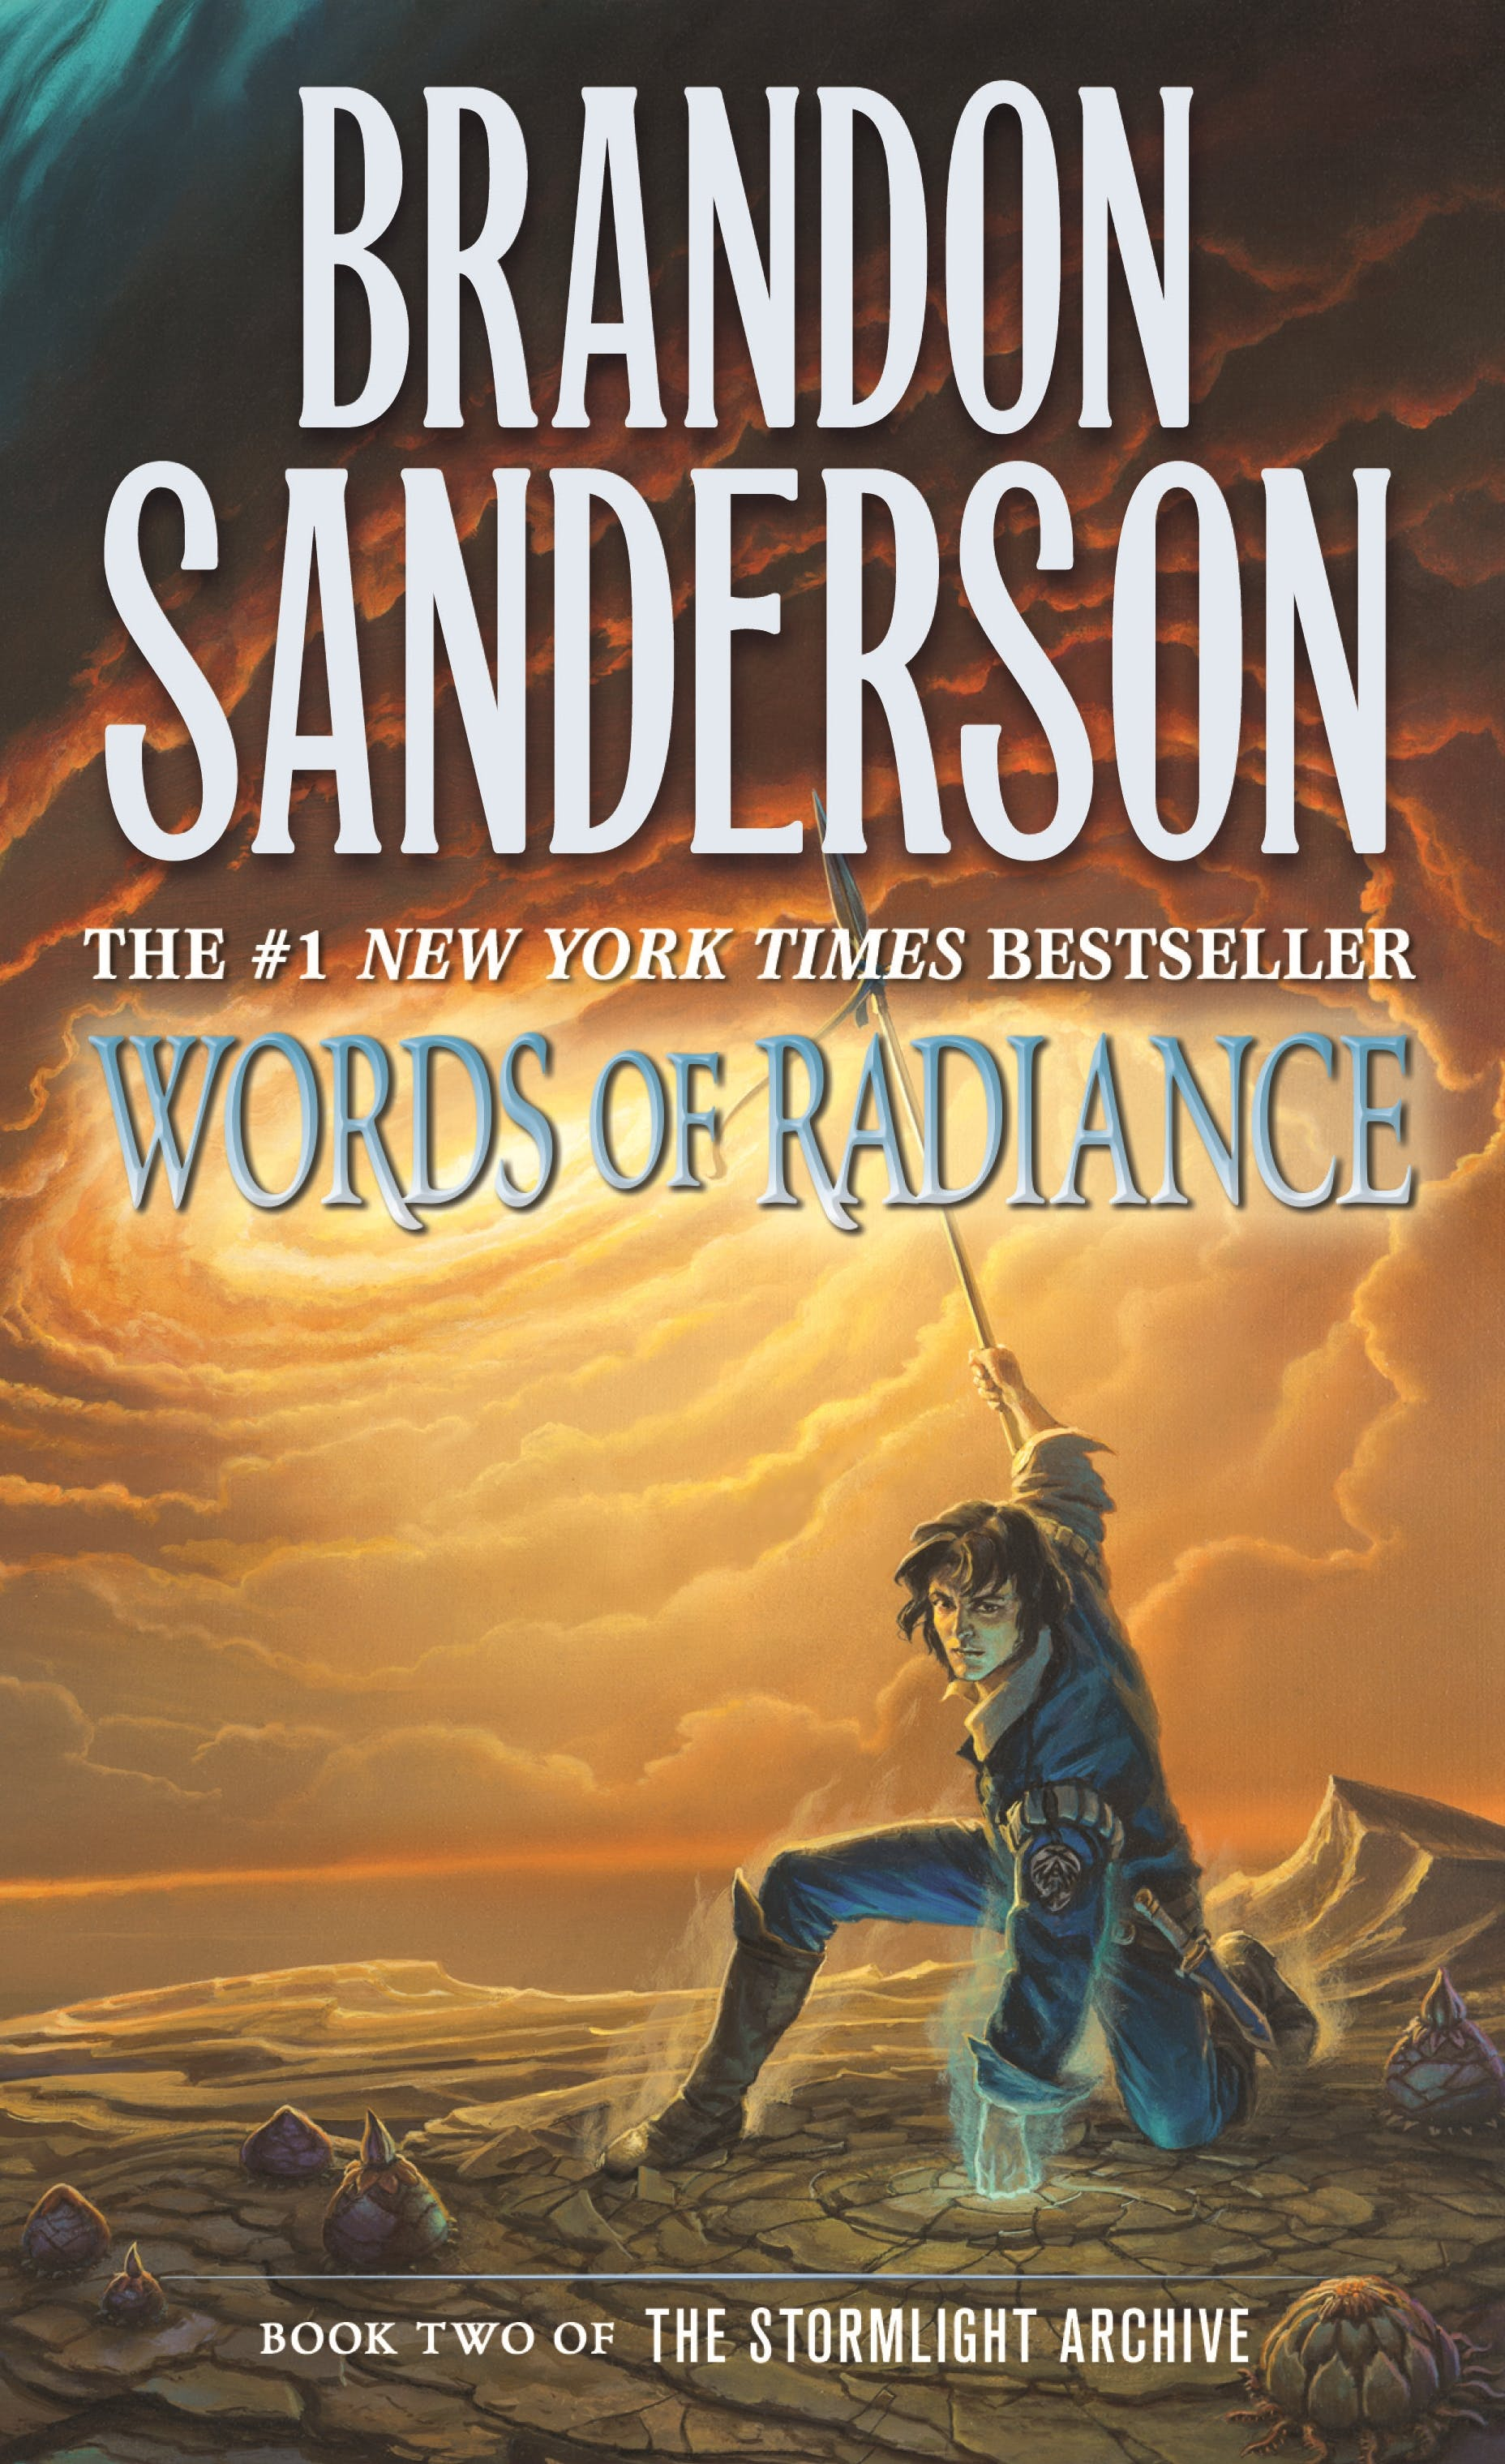 Image of Words of Radiance